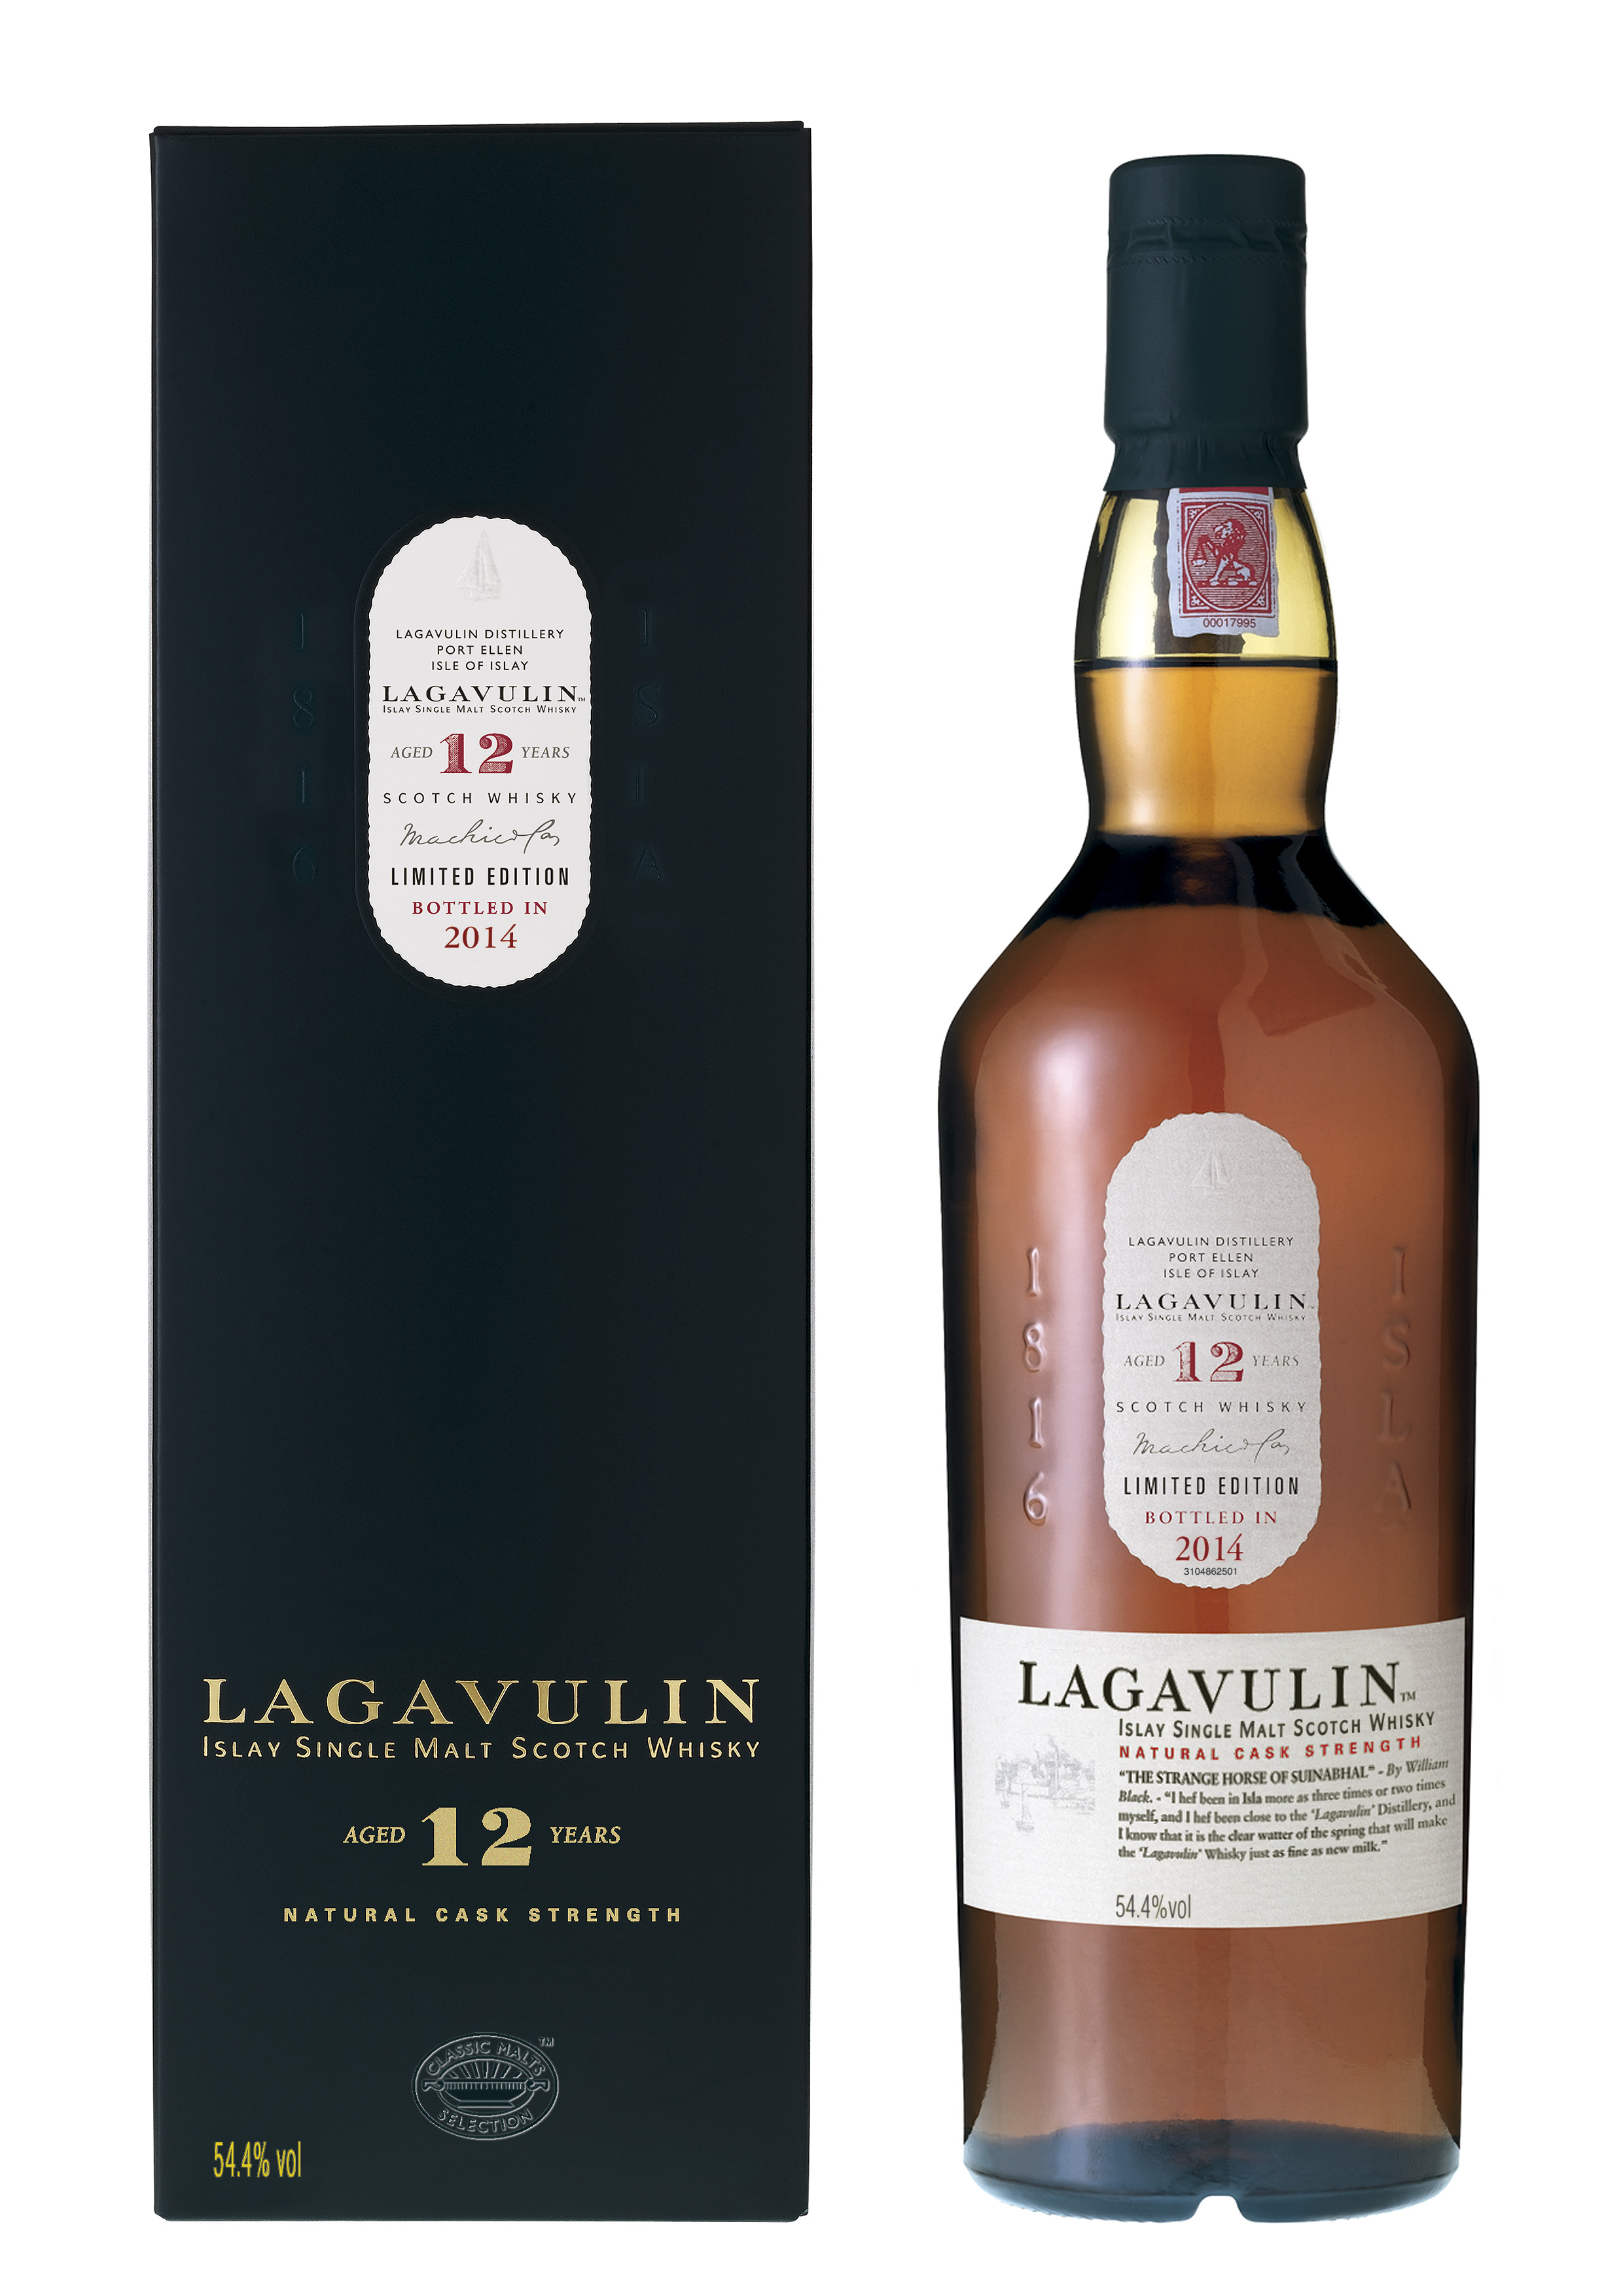 Lagavulin 12 Years Old Limited Edition 2014